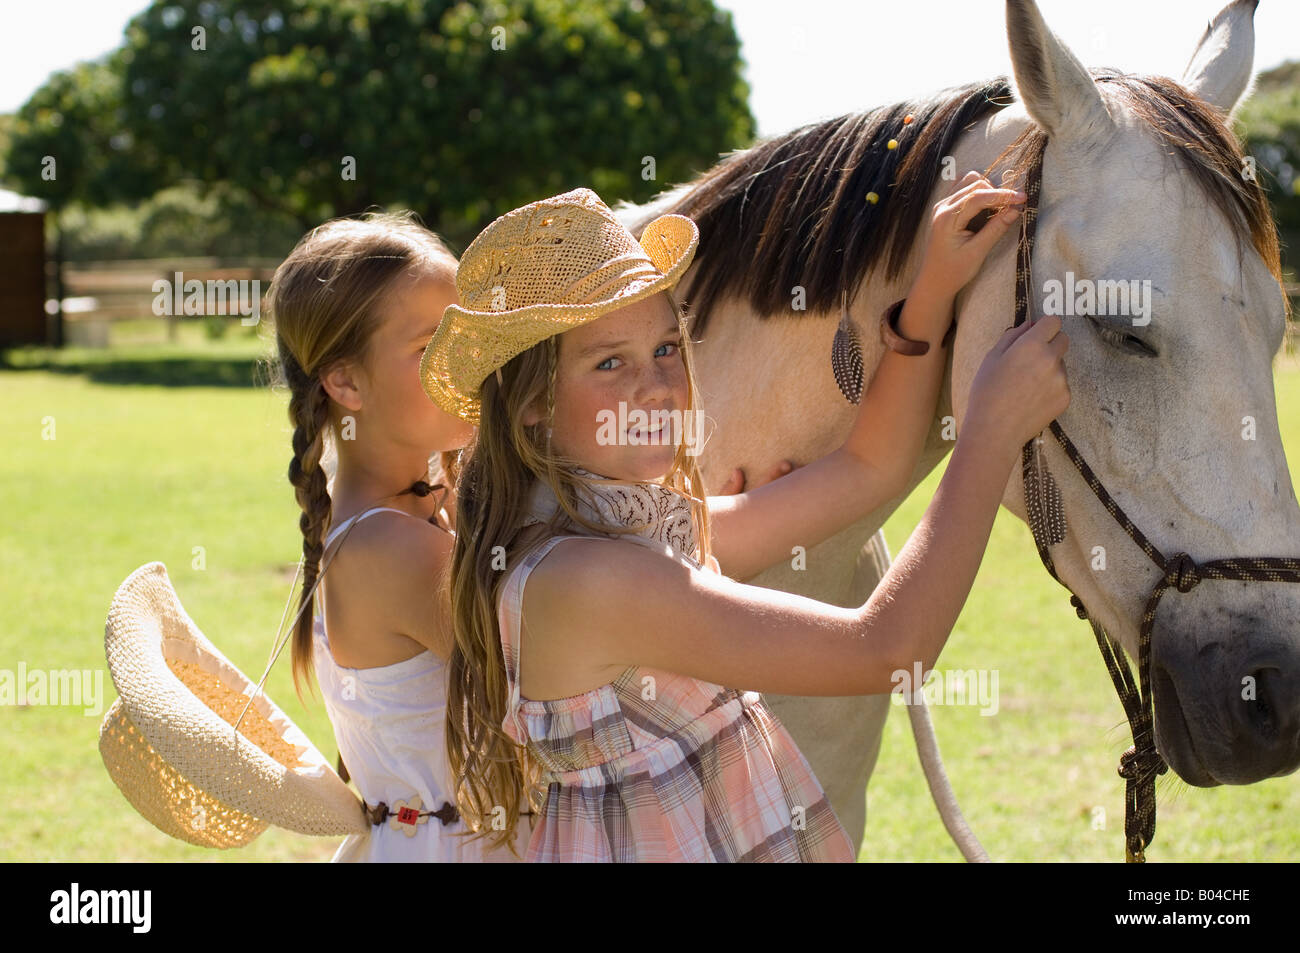 Two girls stroking a horse - Stock Image